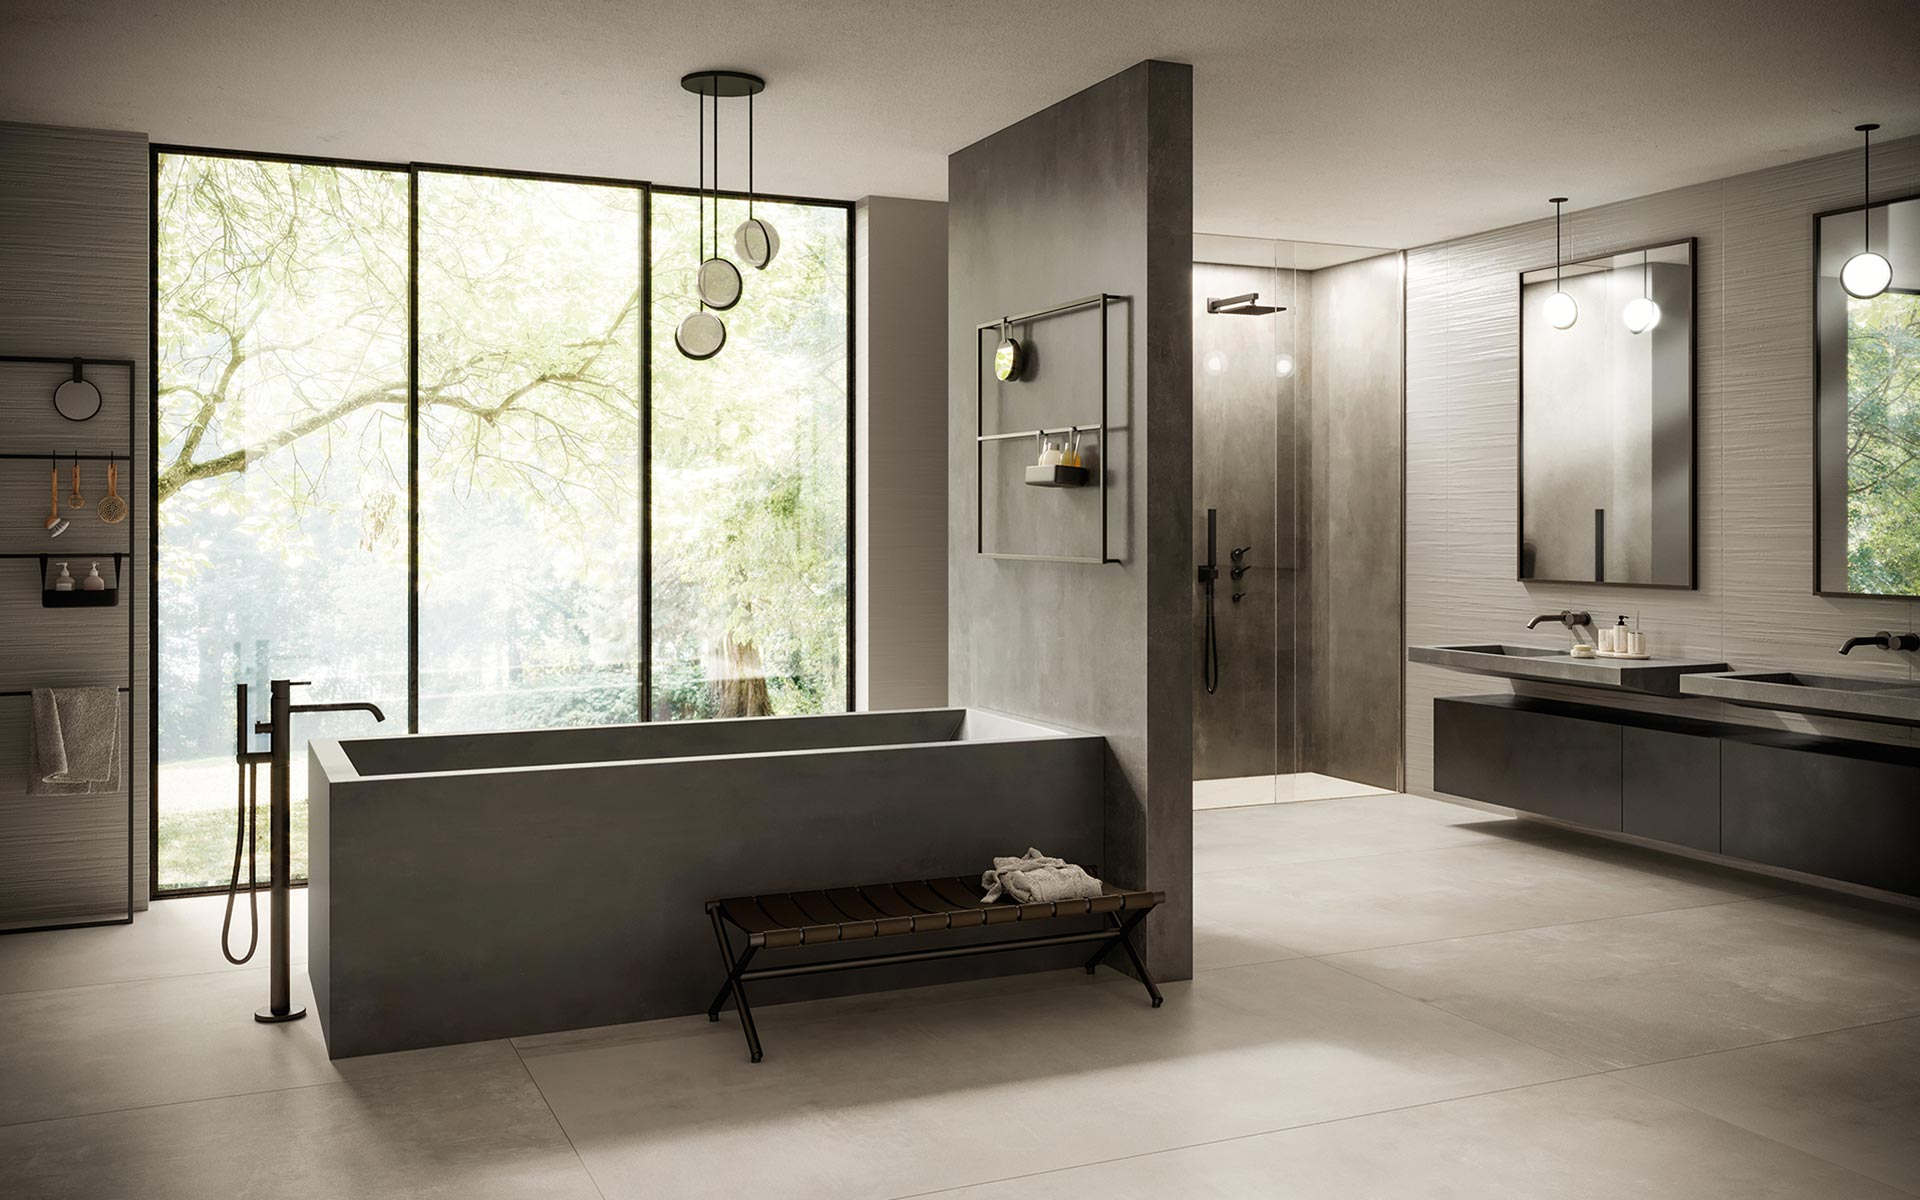 bathtub-ceramic-tiles-concrete-effect